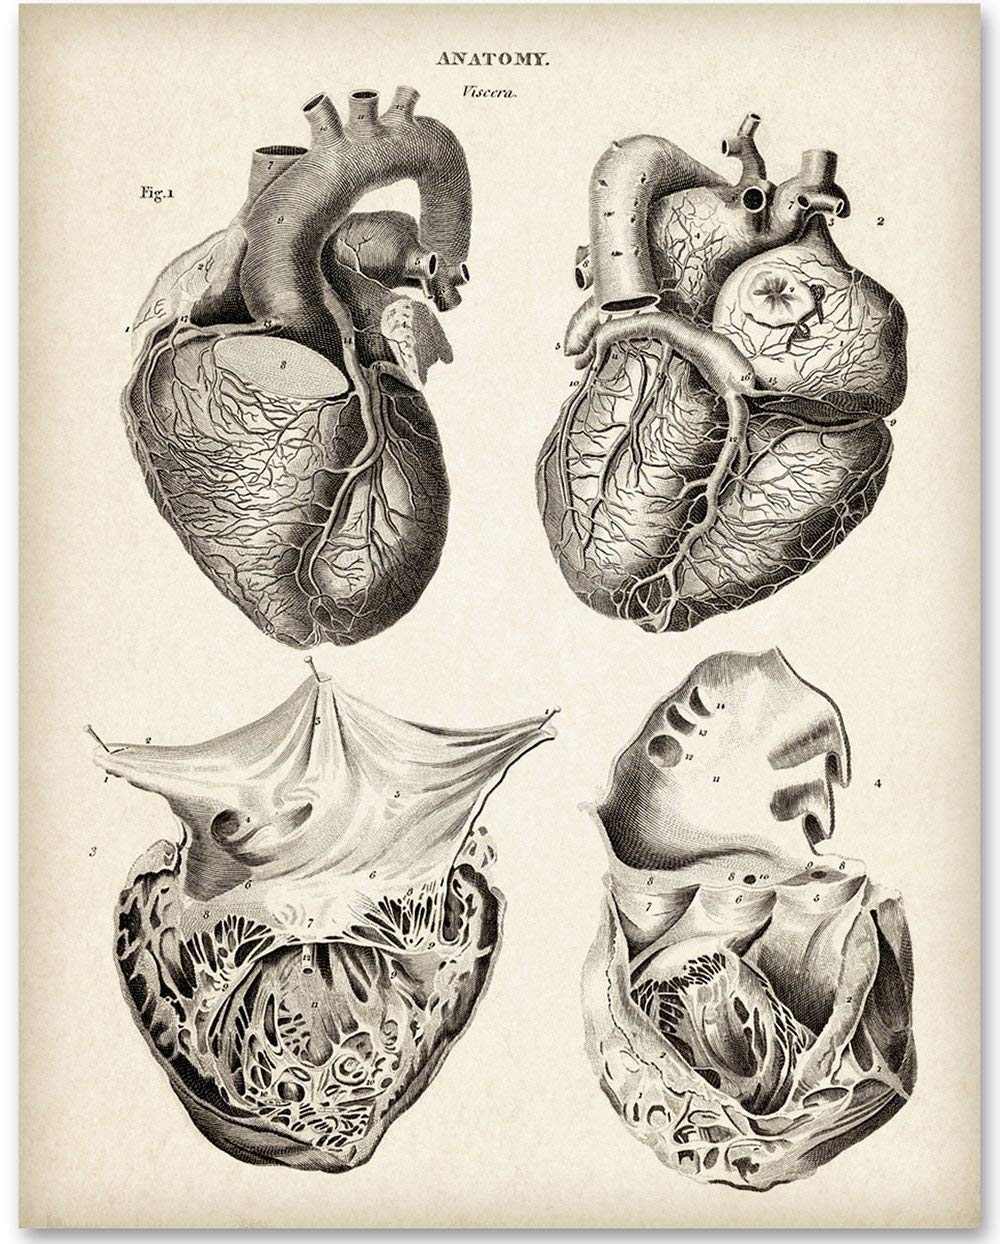 Anatomical Heart From 4 Views - 11x14 Unframed Art Print - Makes a Great Gift For Nurse's Day!